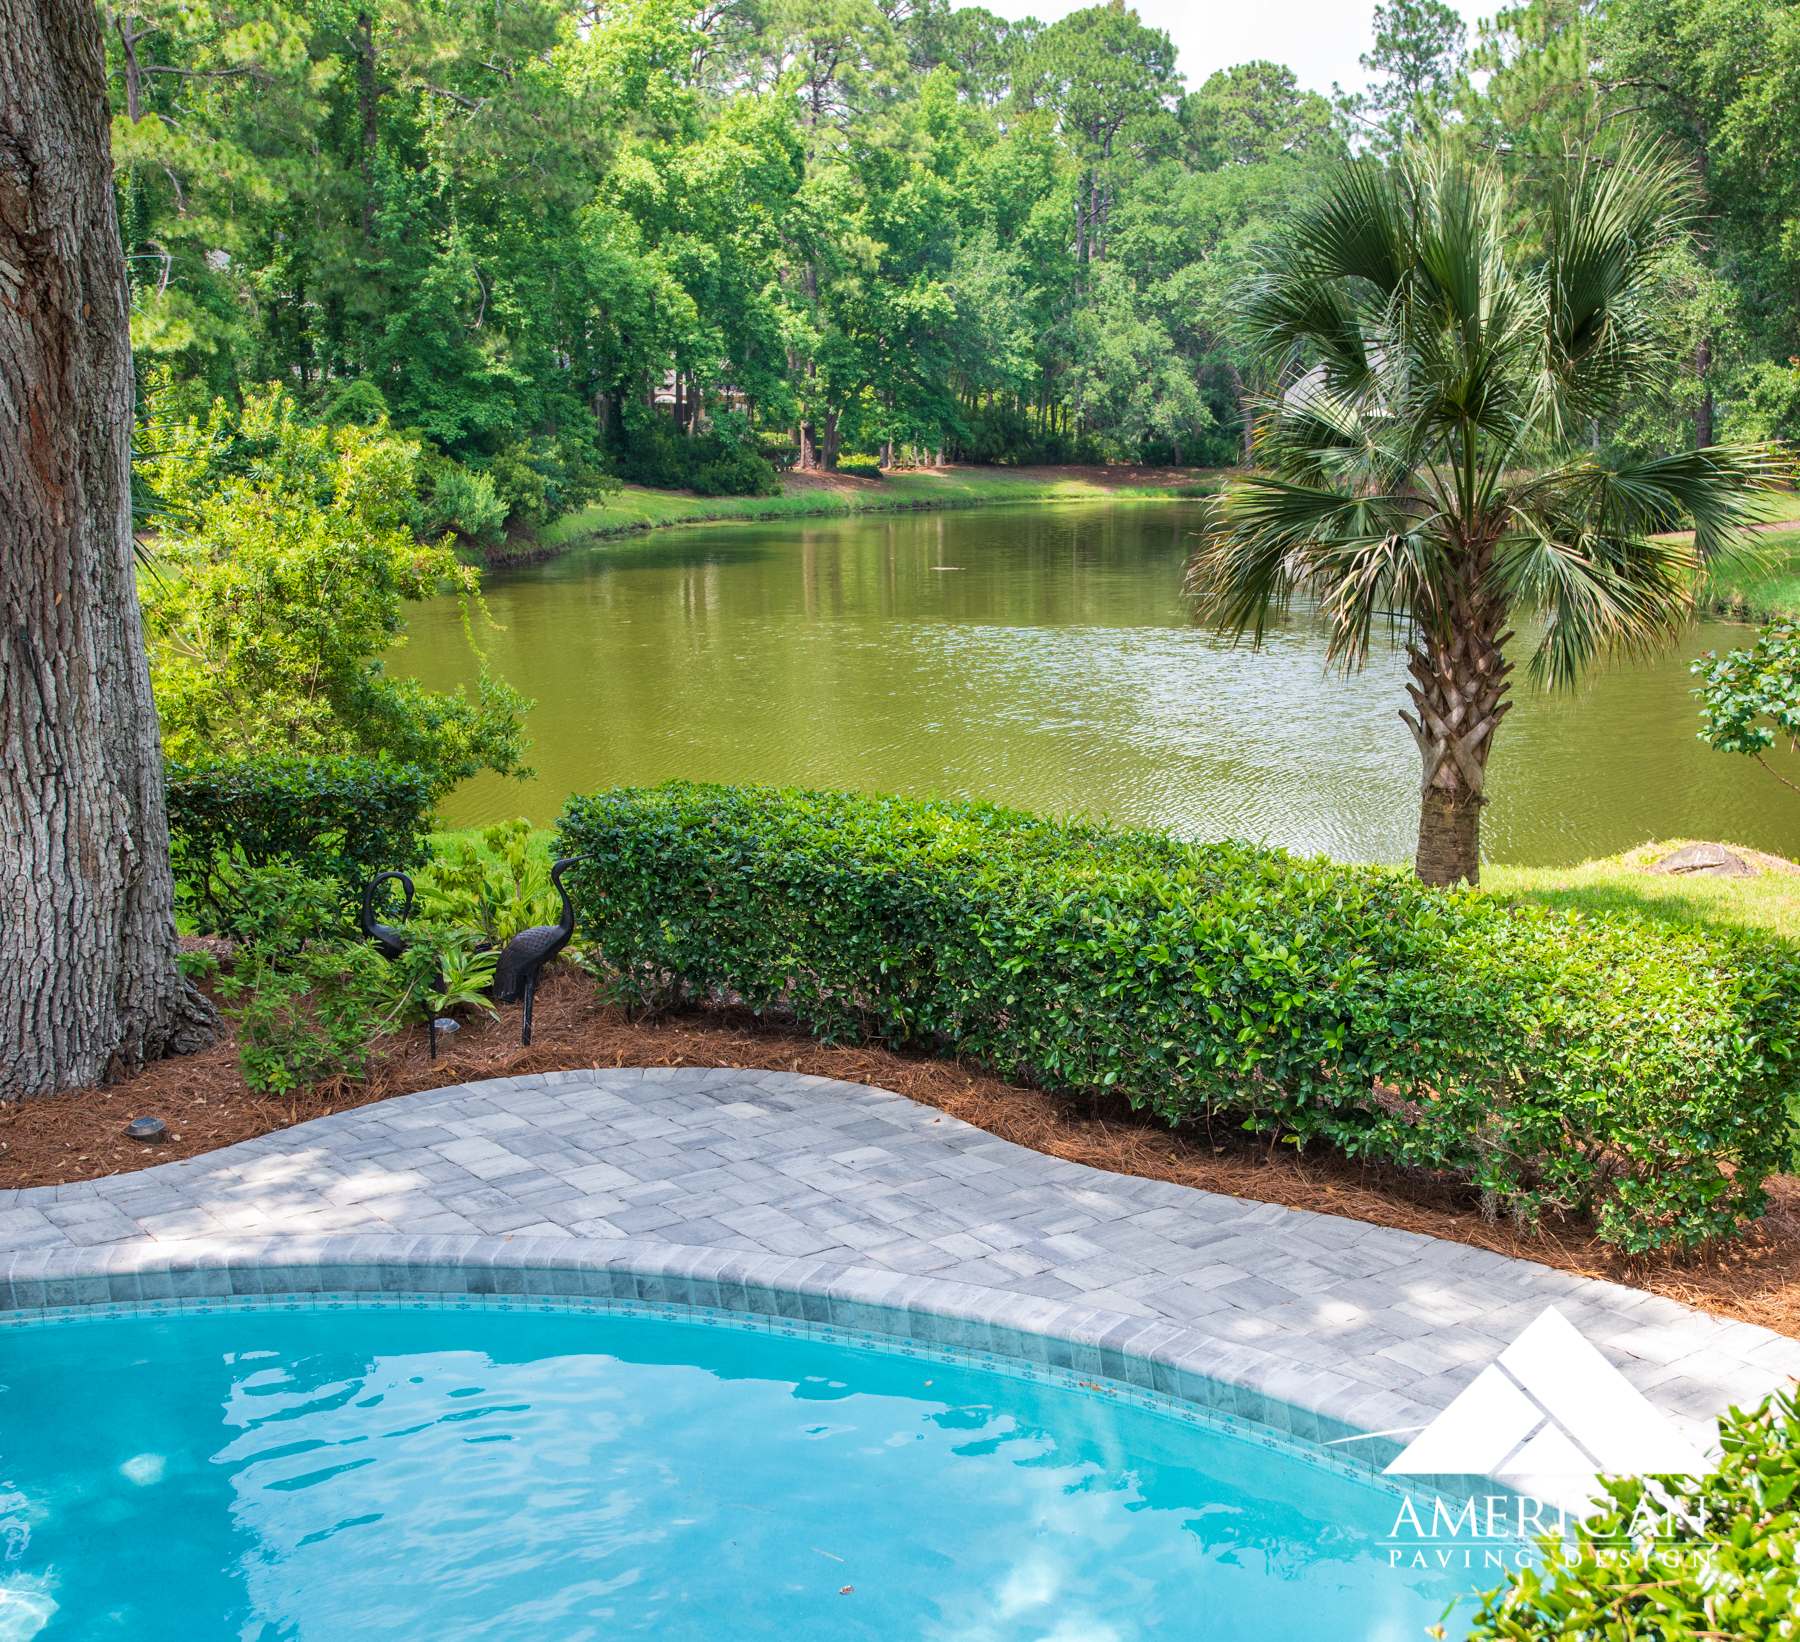 Backyard Pool Deck Ideas- Hilton Head Island